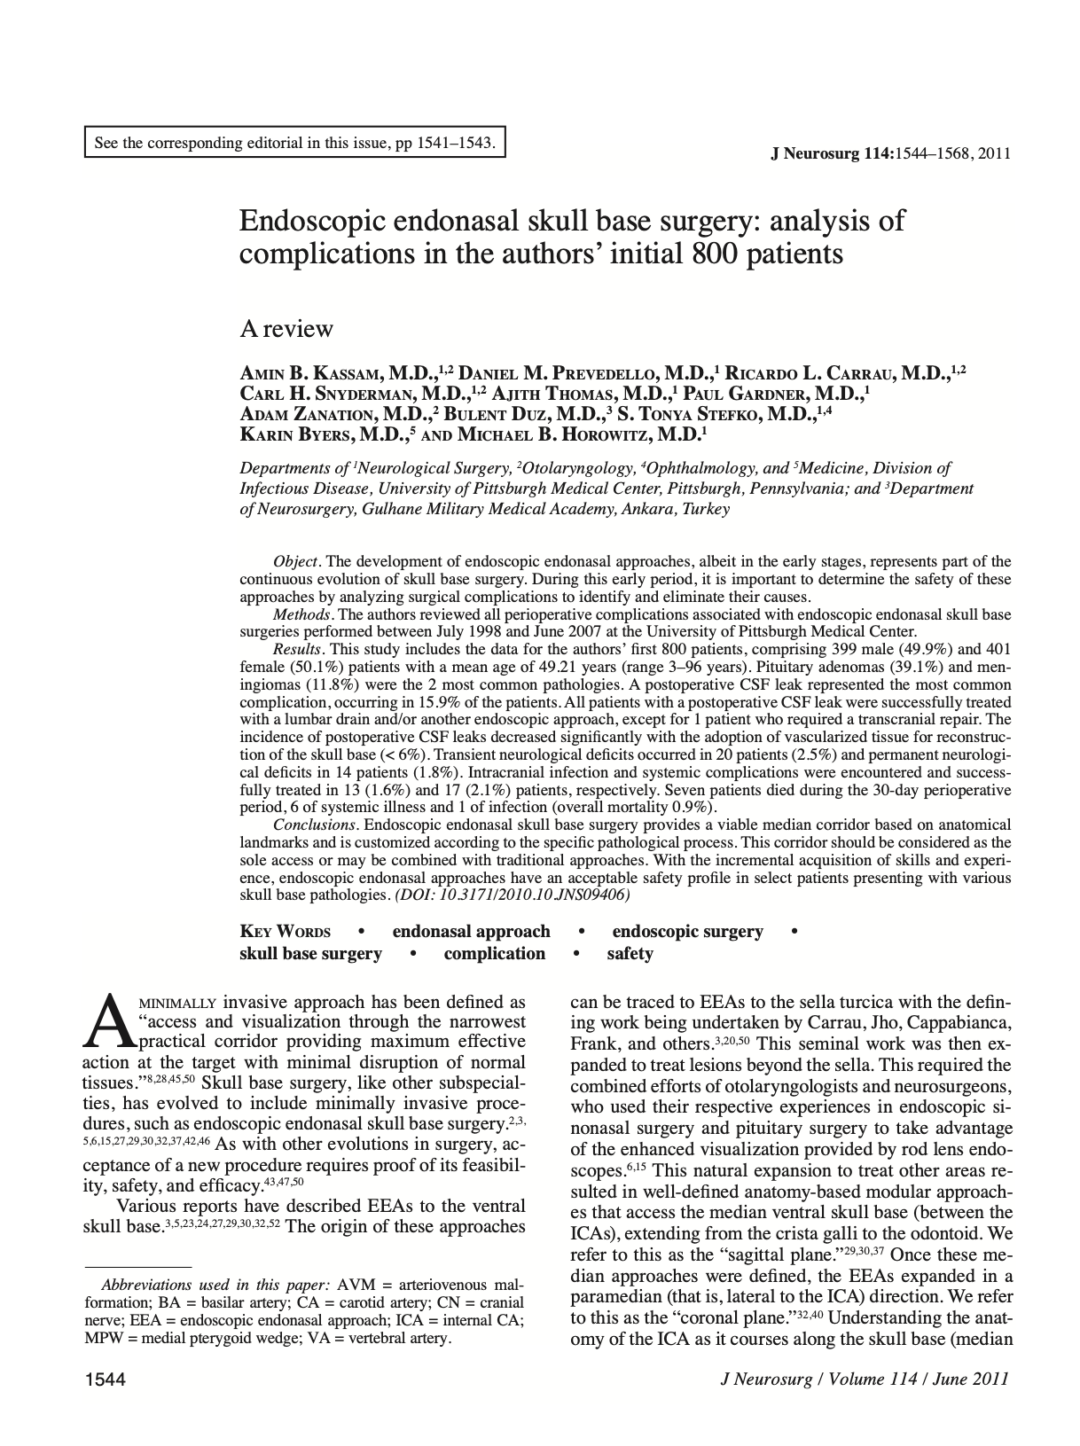 Endoscopic endonasal skull base surgery: analysis of complications in the authors' initial 800 patients